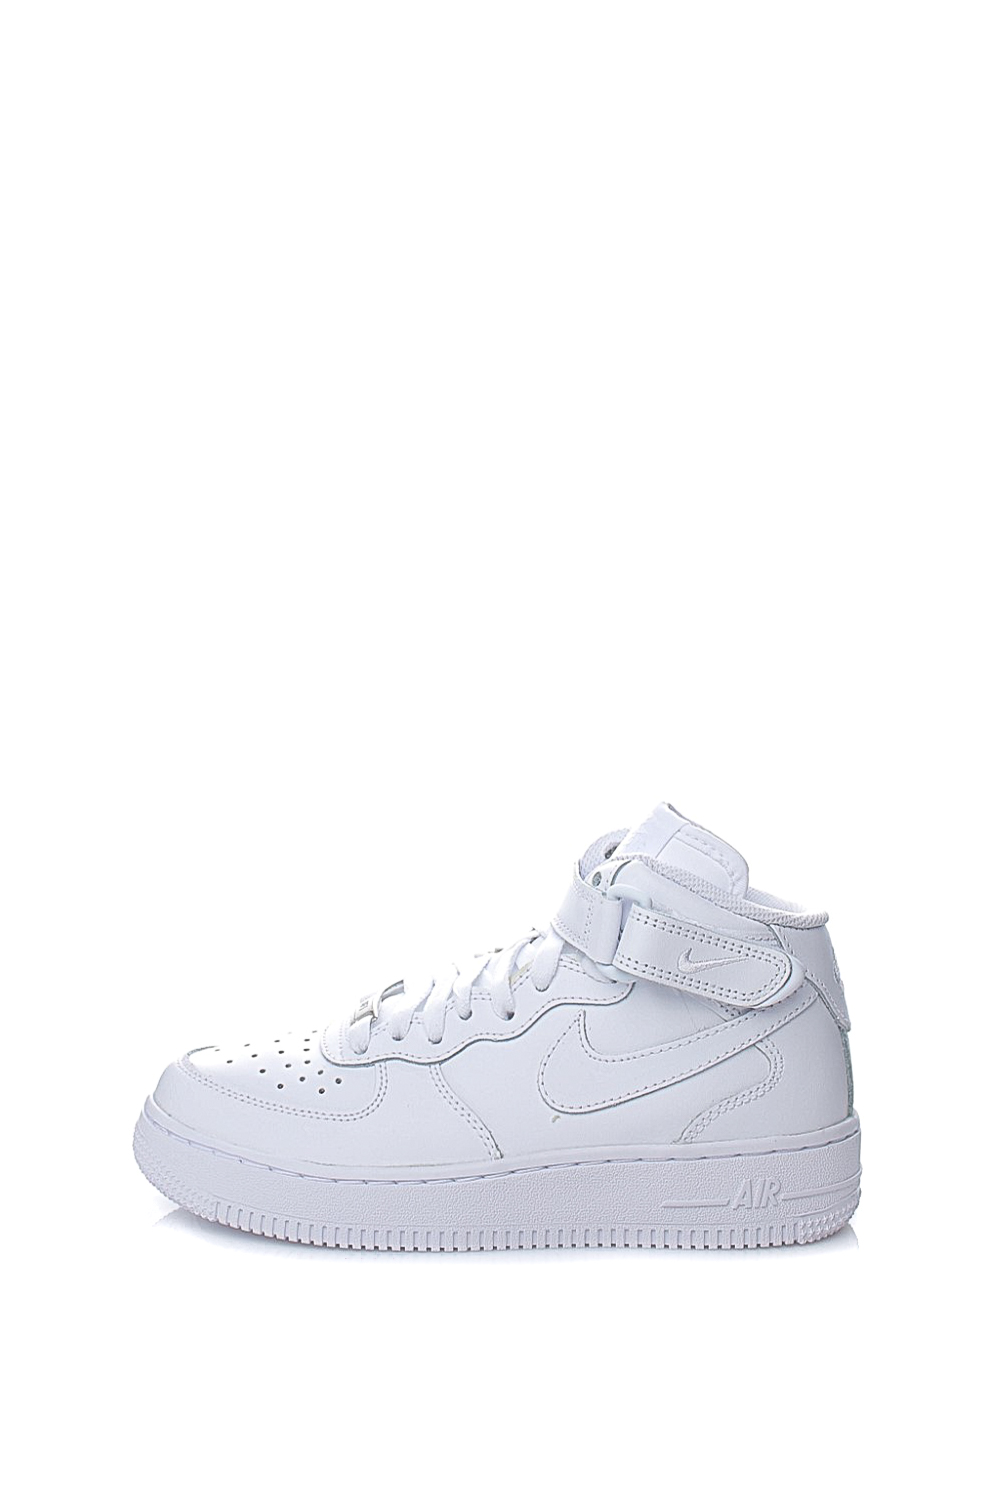 NIKE - Παιδικά αθλητικά μποτάκια AIR FORCE 1 MID λευκά - Roe Shoes ... e189069255a